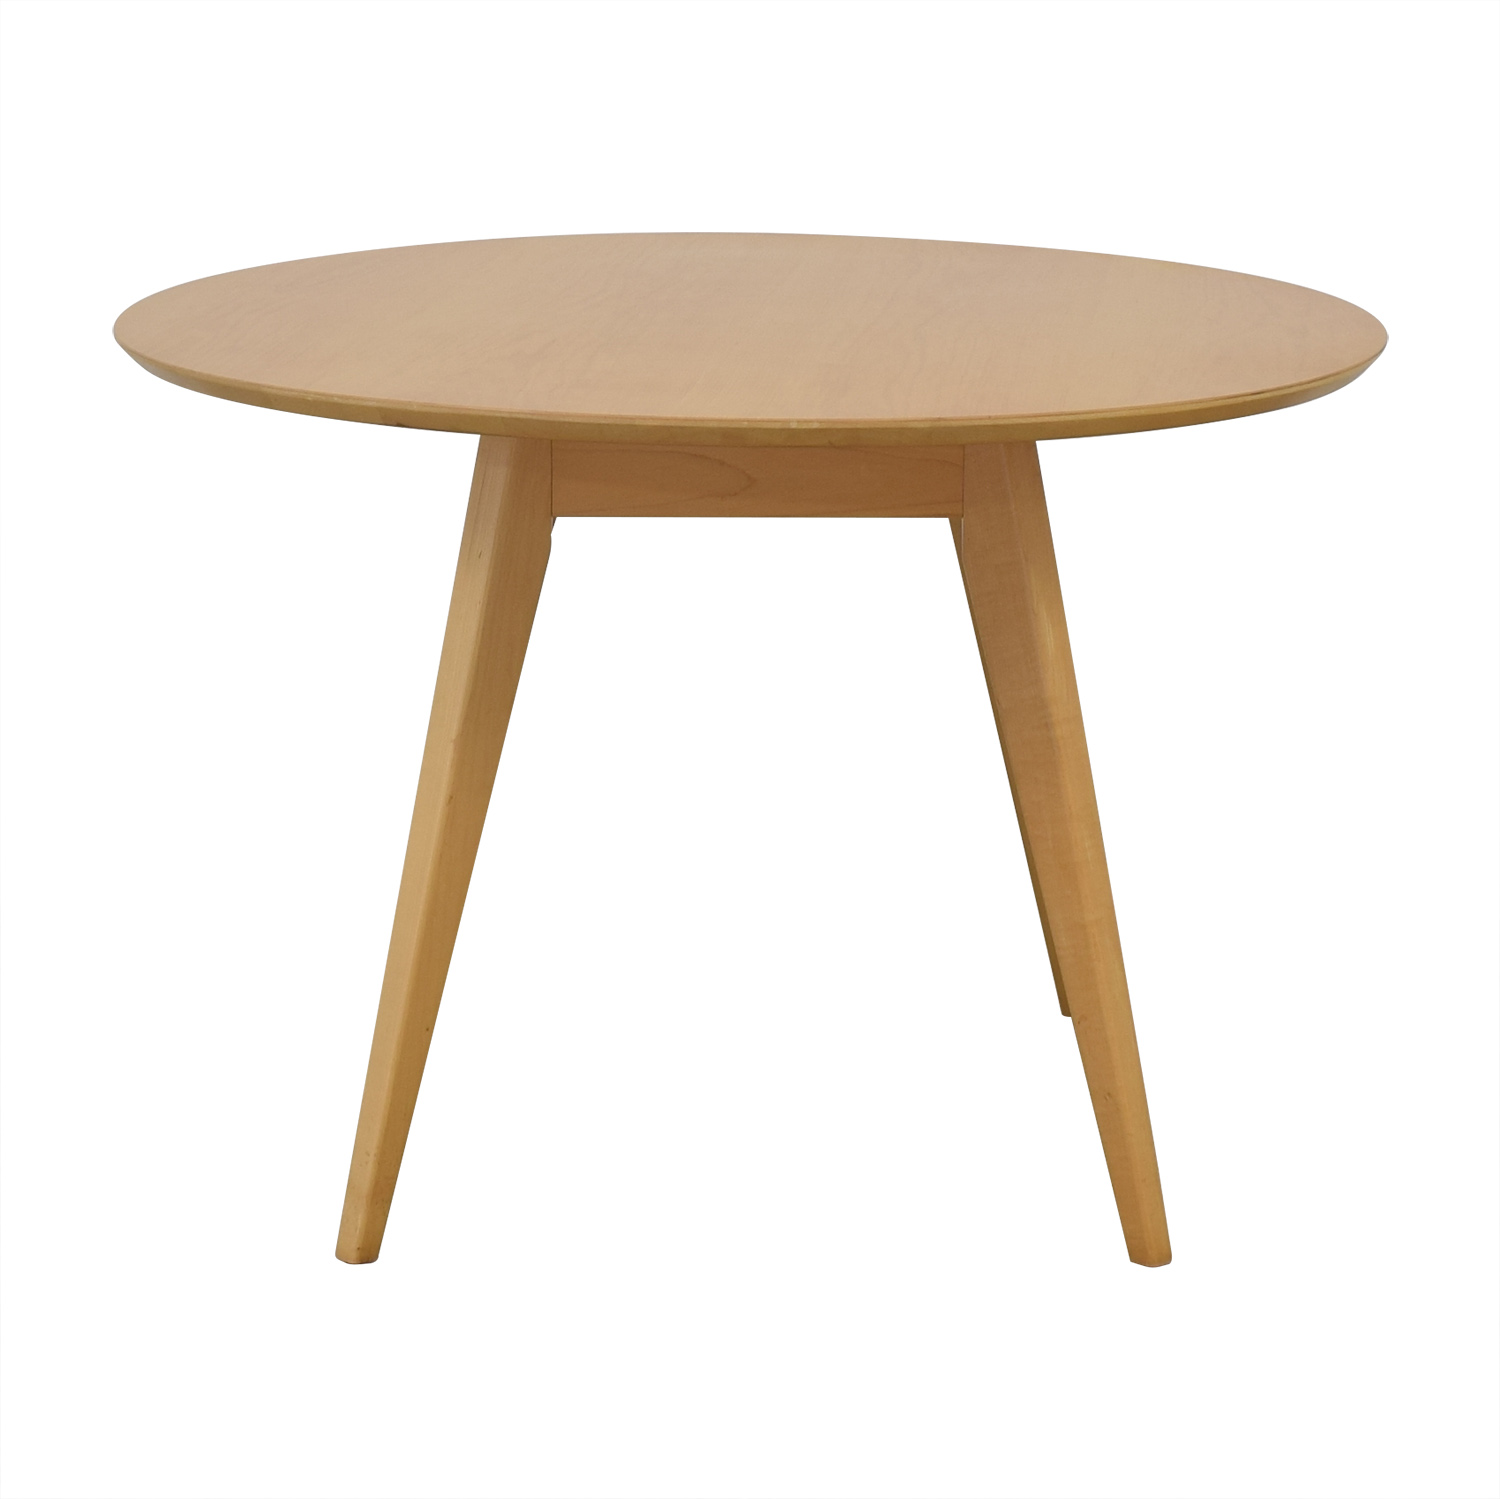 buy Design Within Reach Risom Round Dining Table Design Within Reach